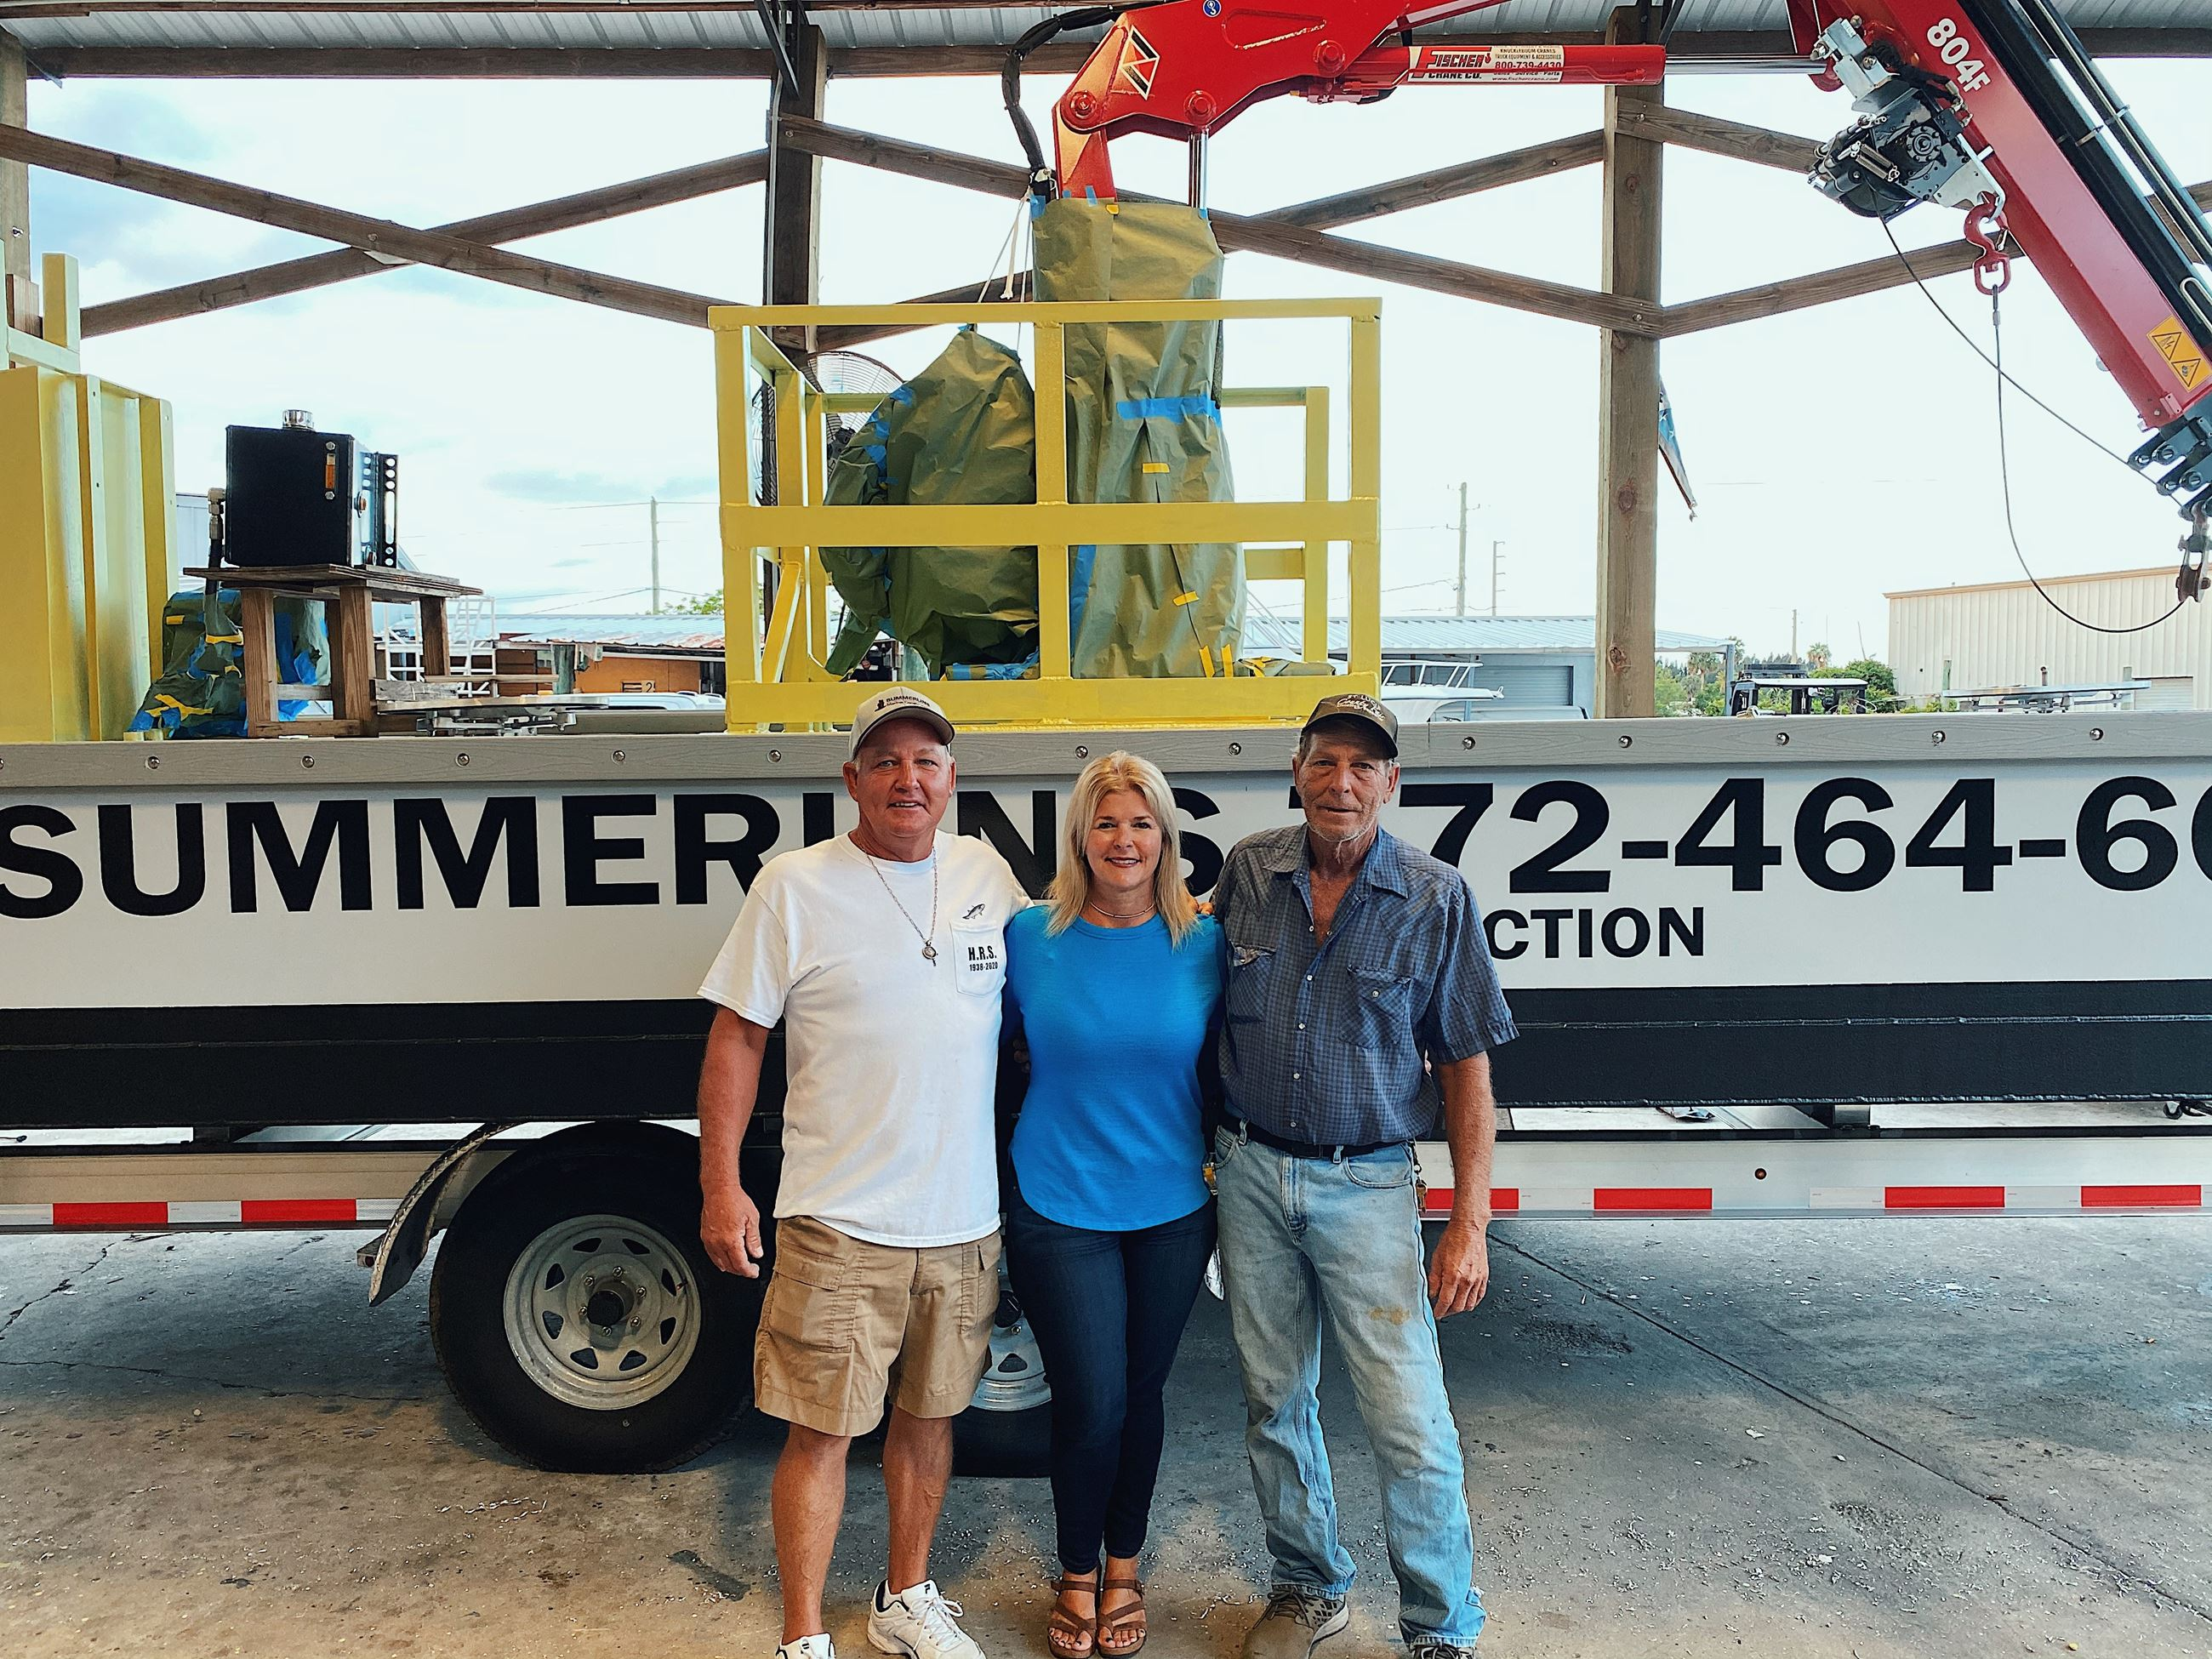 Owners of Summerlins Marine Construction